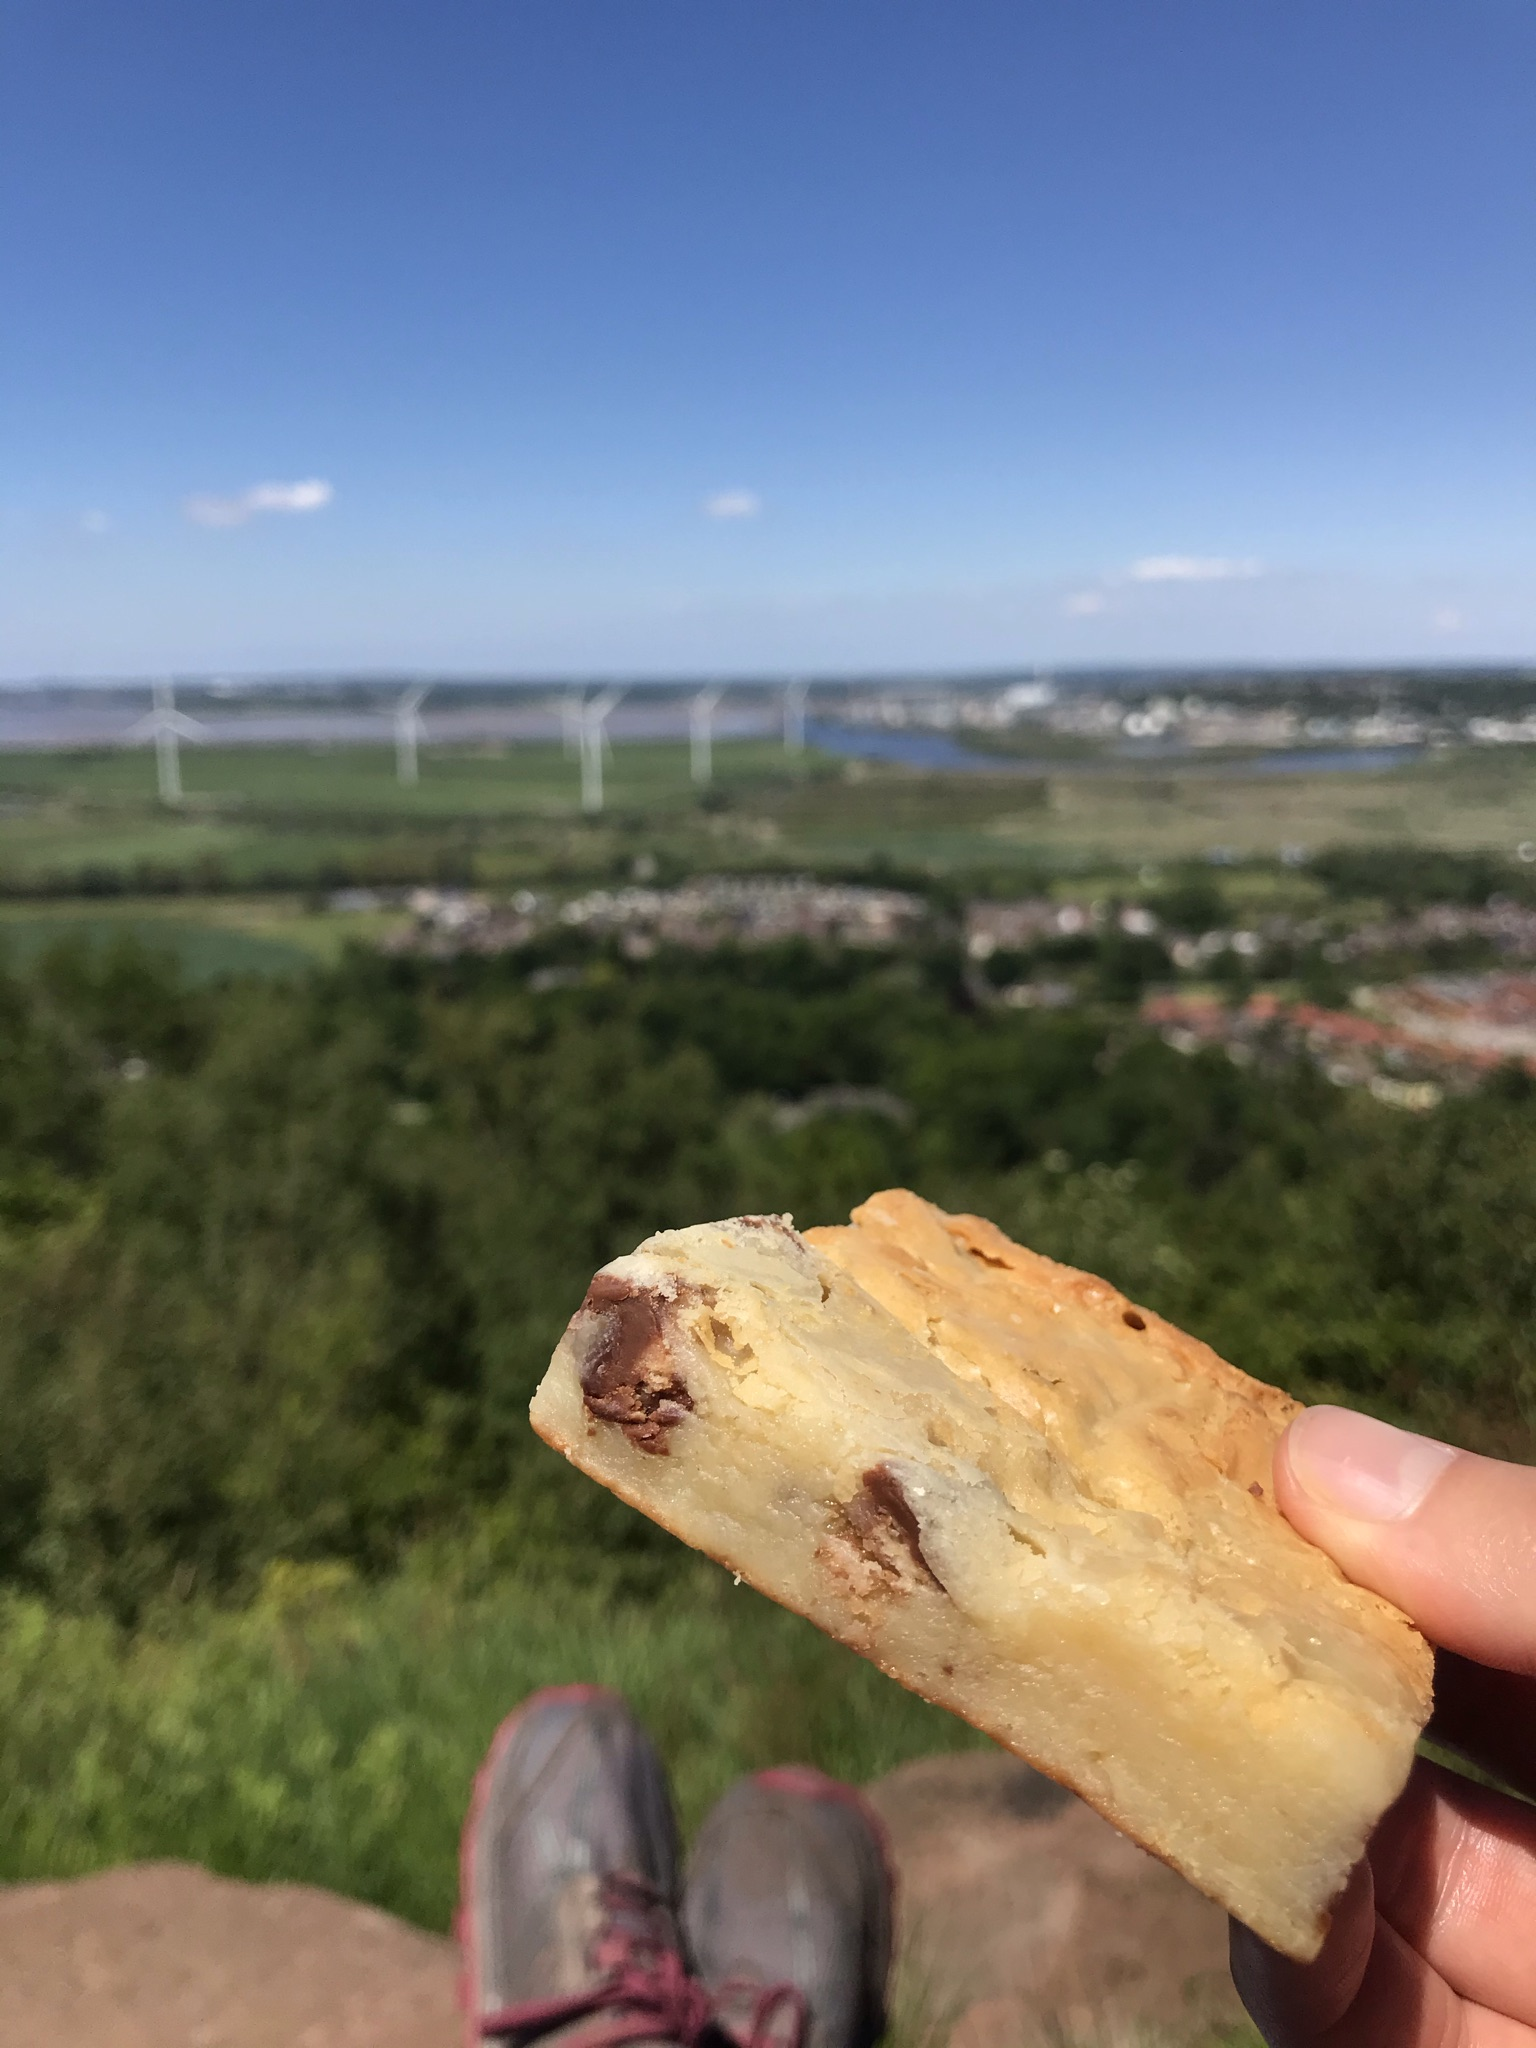 A blondie cake is held up to the camera. The background of feet resting on the stone, trees and distant wind turbines is blurred